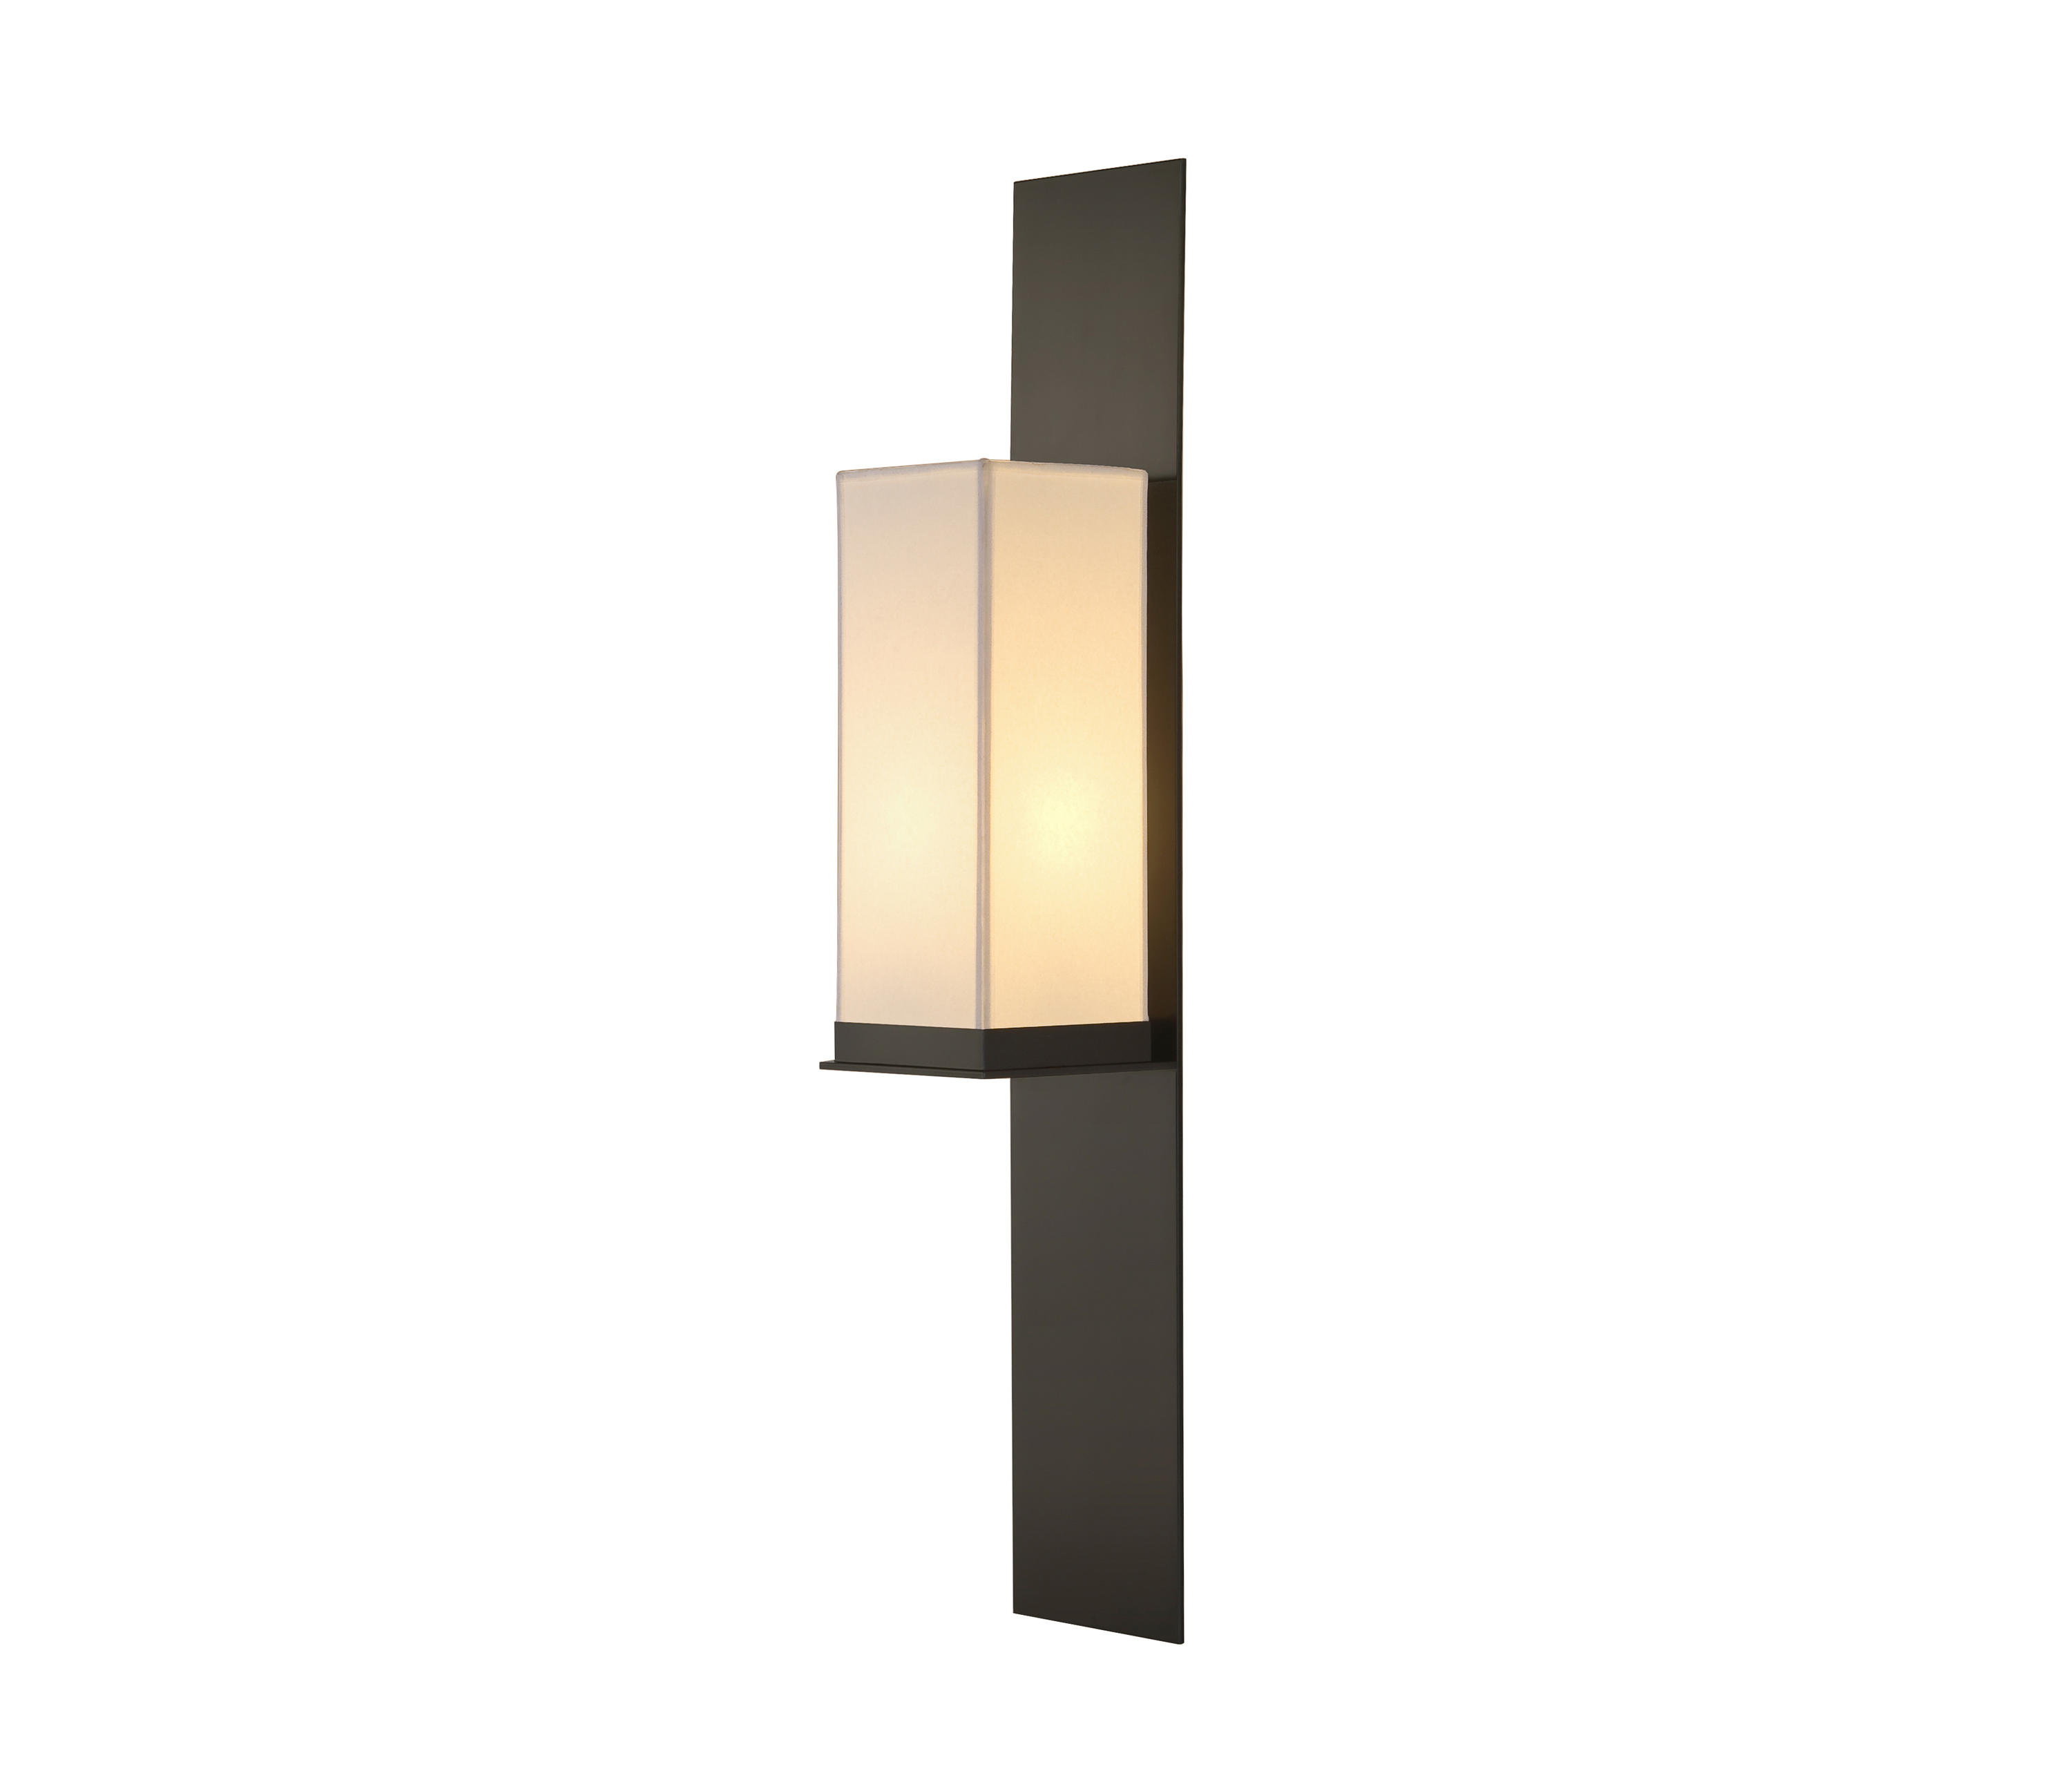 EKSTER - Wall lights from Kevin Reilly Collection | Architonic